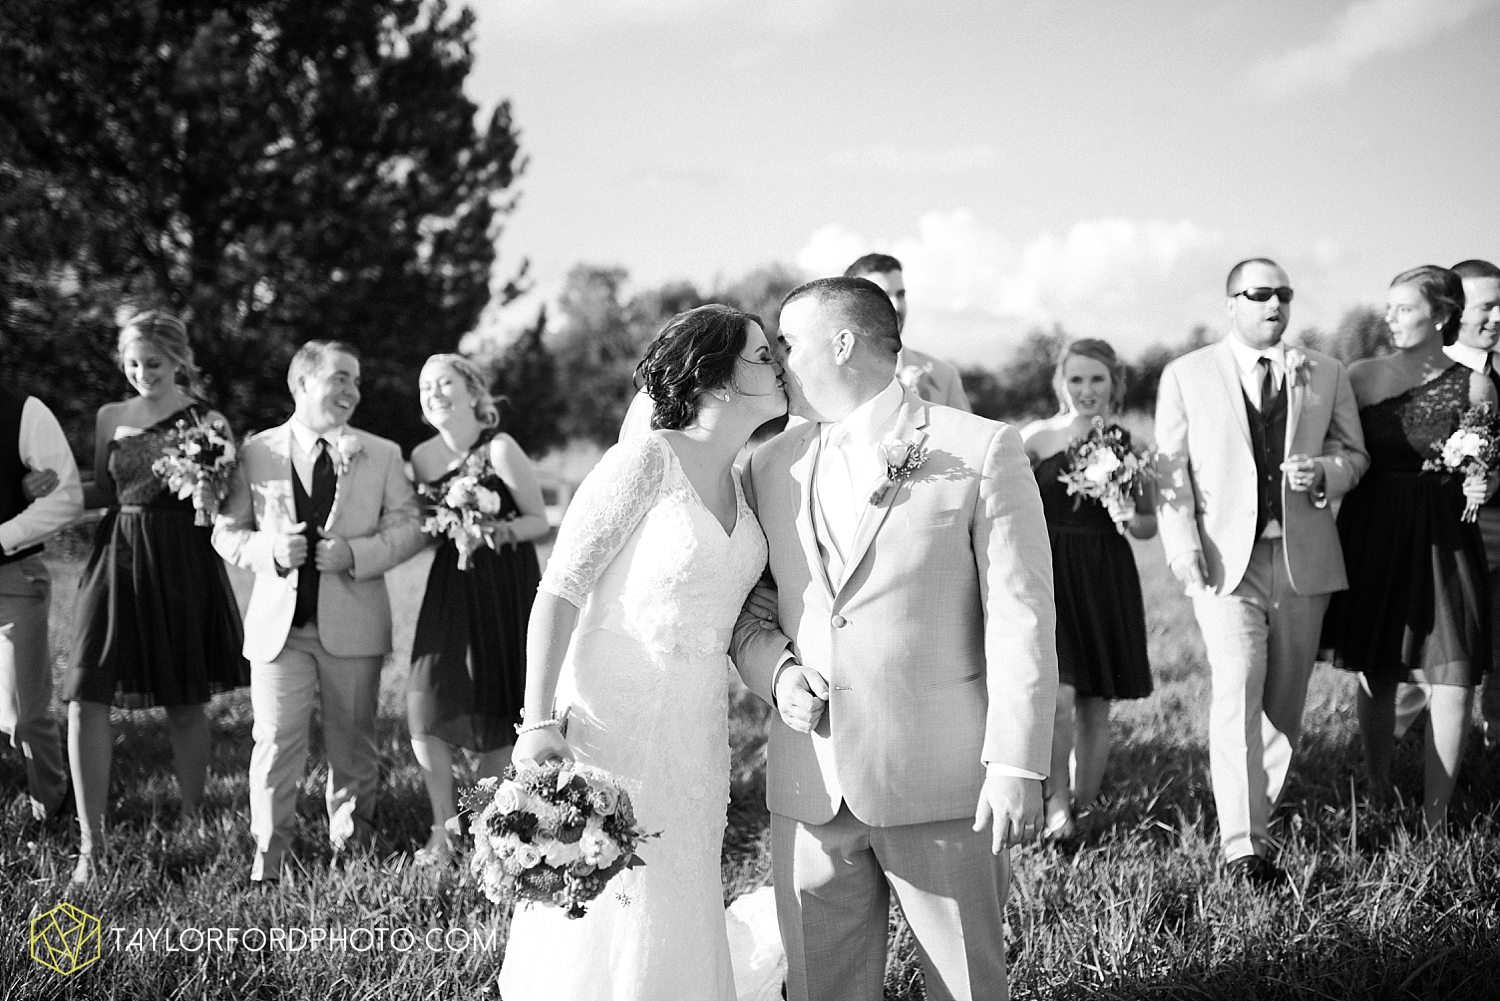 van_wert_ohio_fort_wayne_indiana_wedding_photographer_taylor_ford_cerutis_catering_2826.jpg